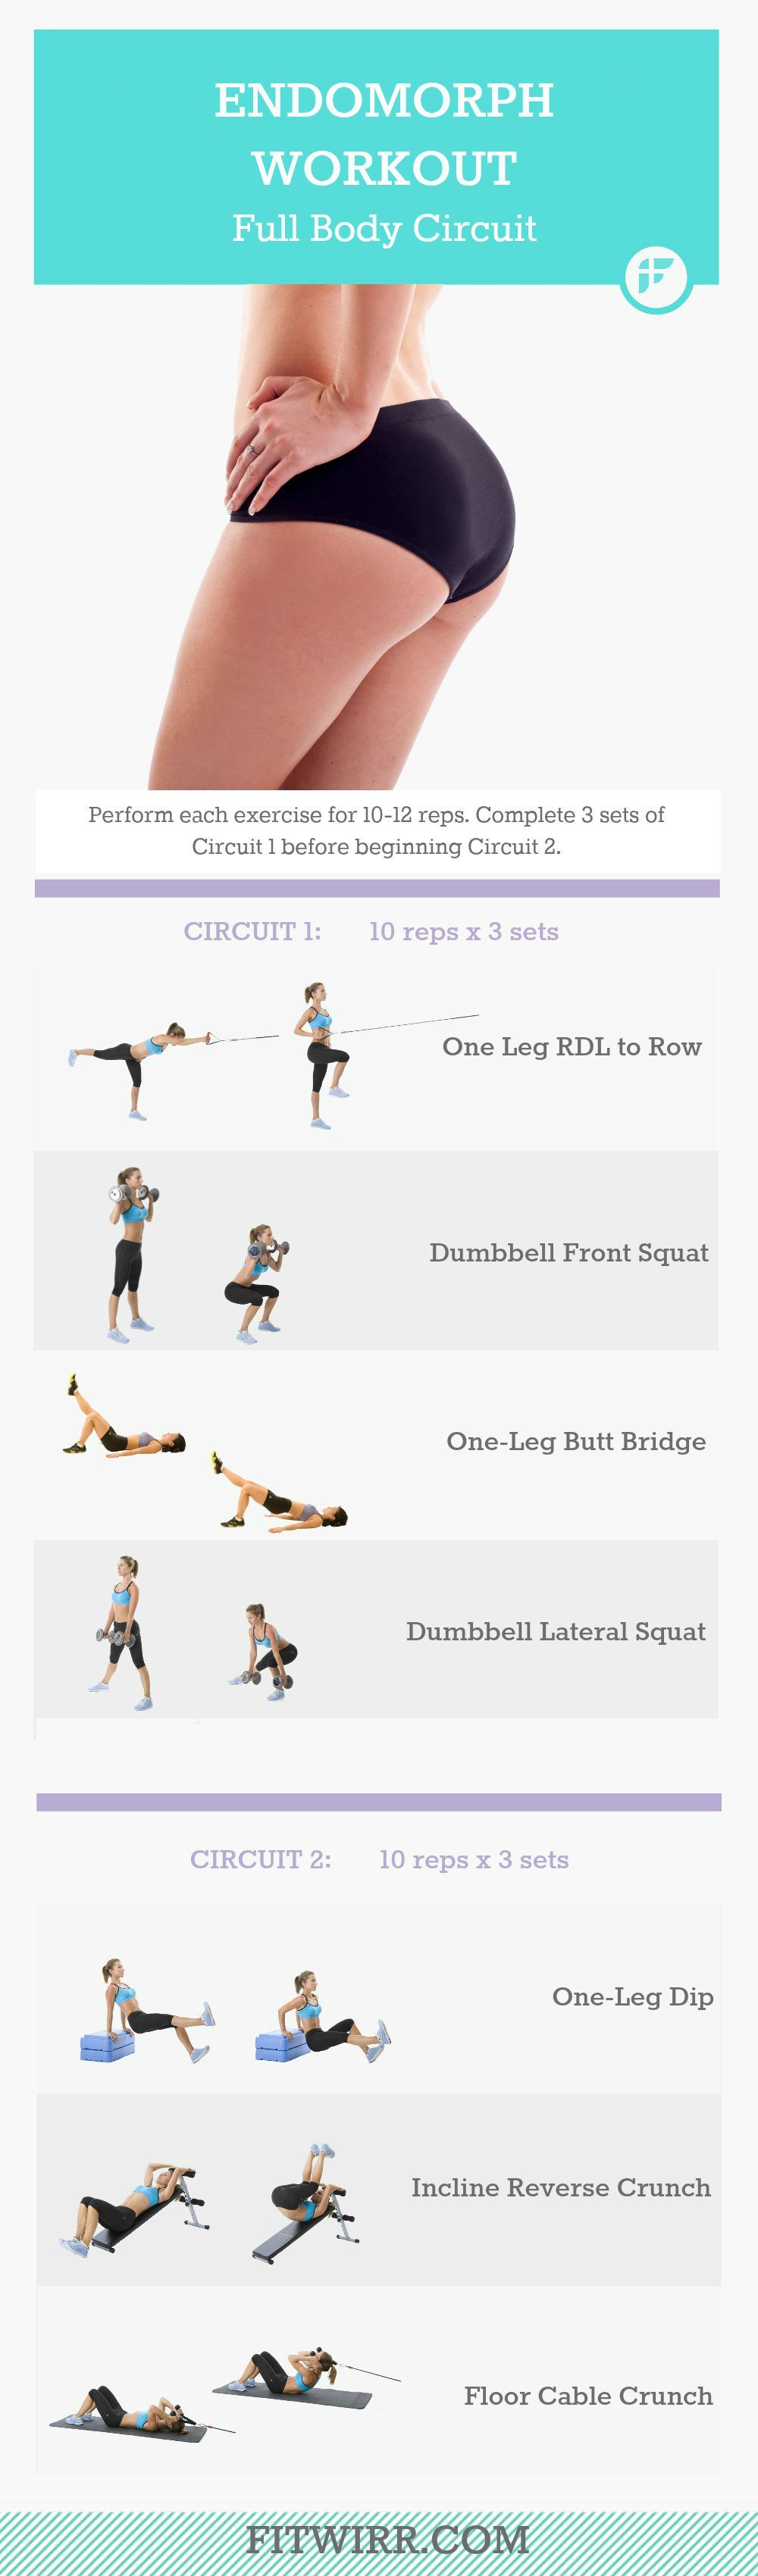 Pear Shaped Body Endomorph Workout Plan | Pear, Lost ...